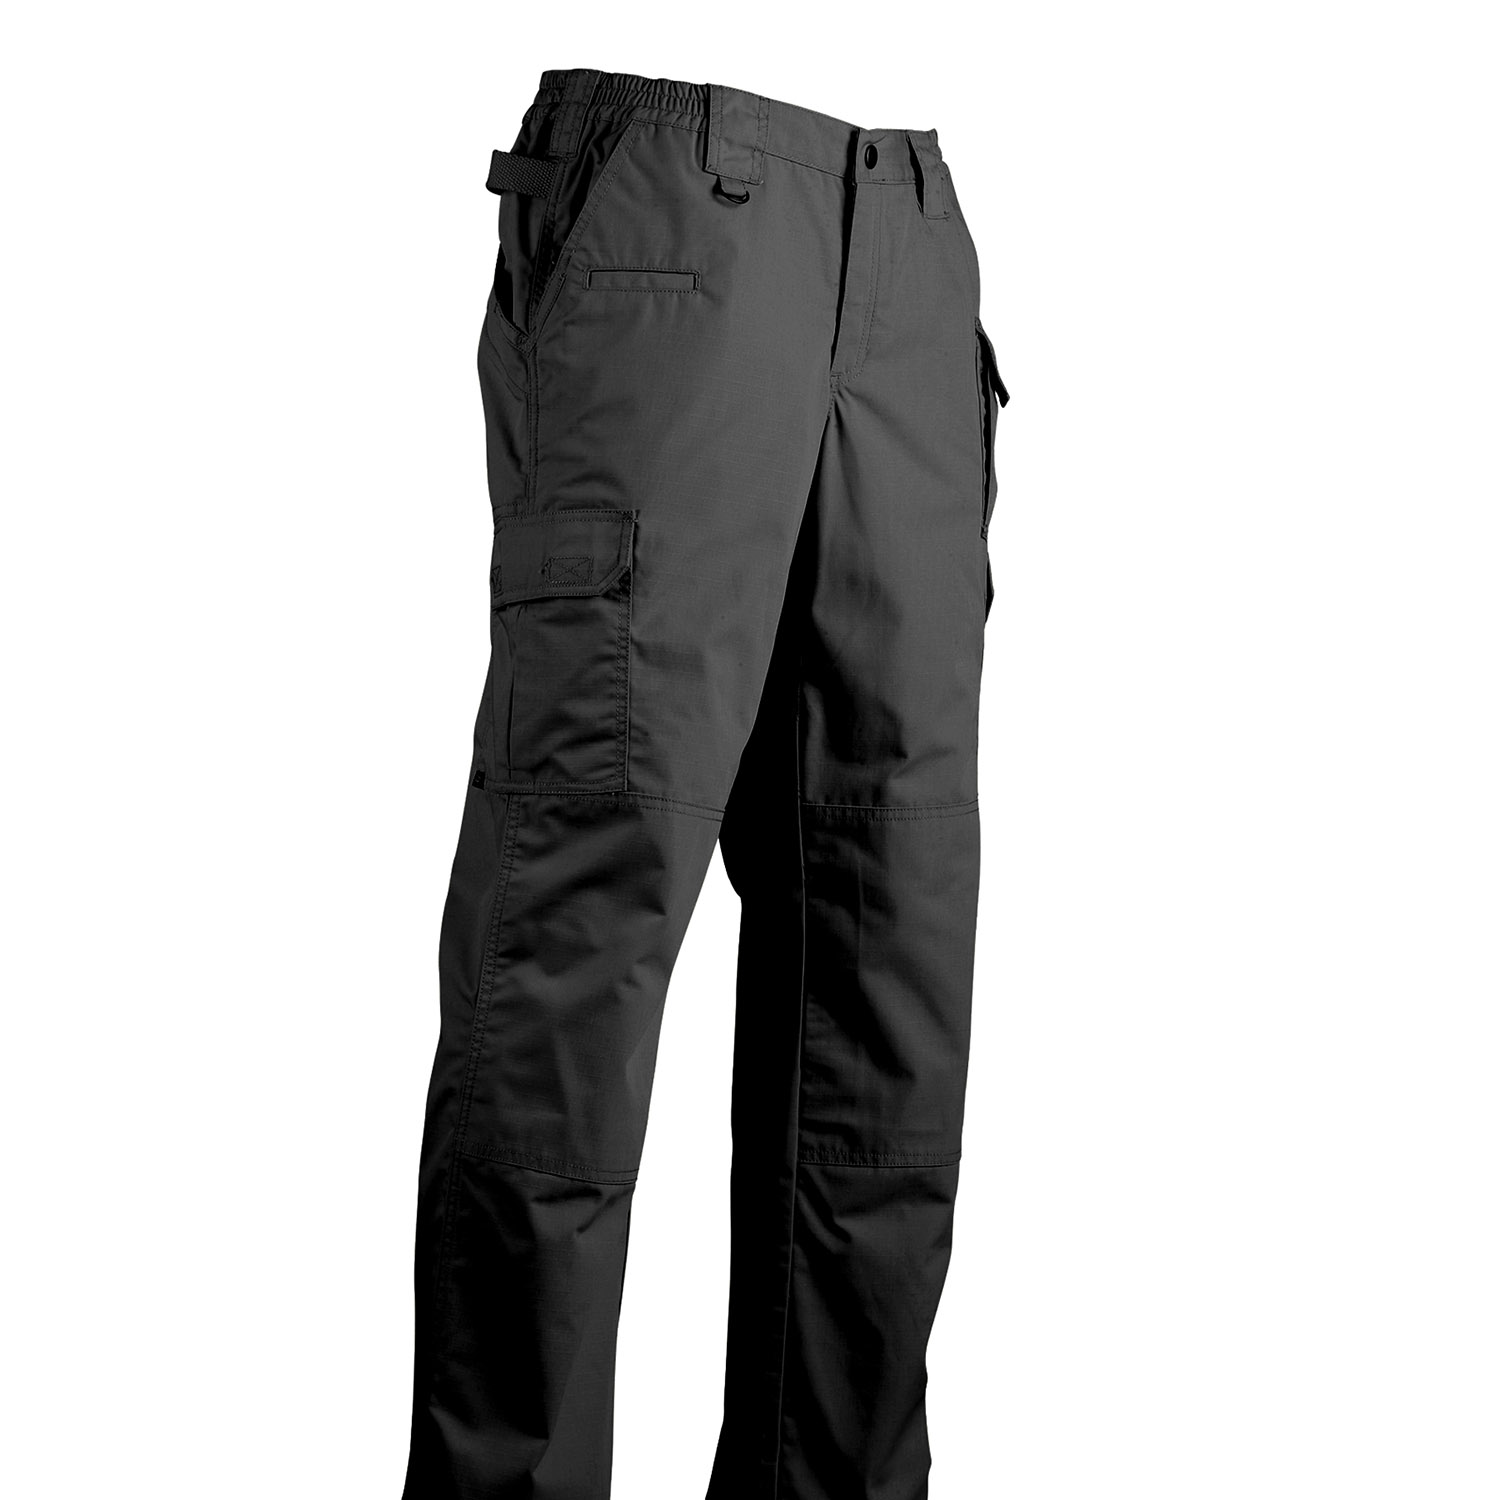 117b686f3122f 5.11 Tactical TacLite Pro Women s Ripstop Pants